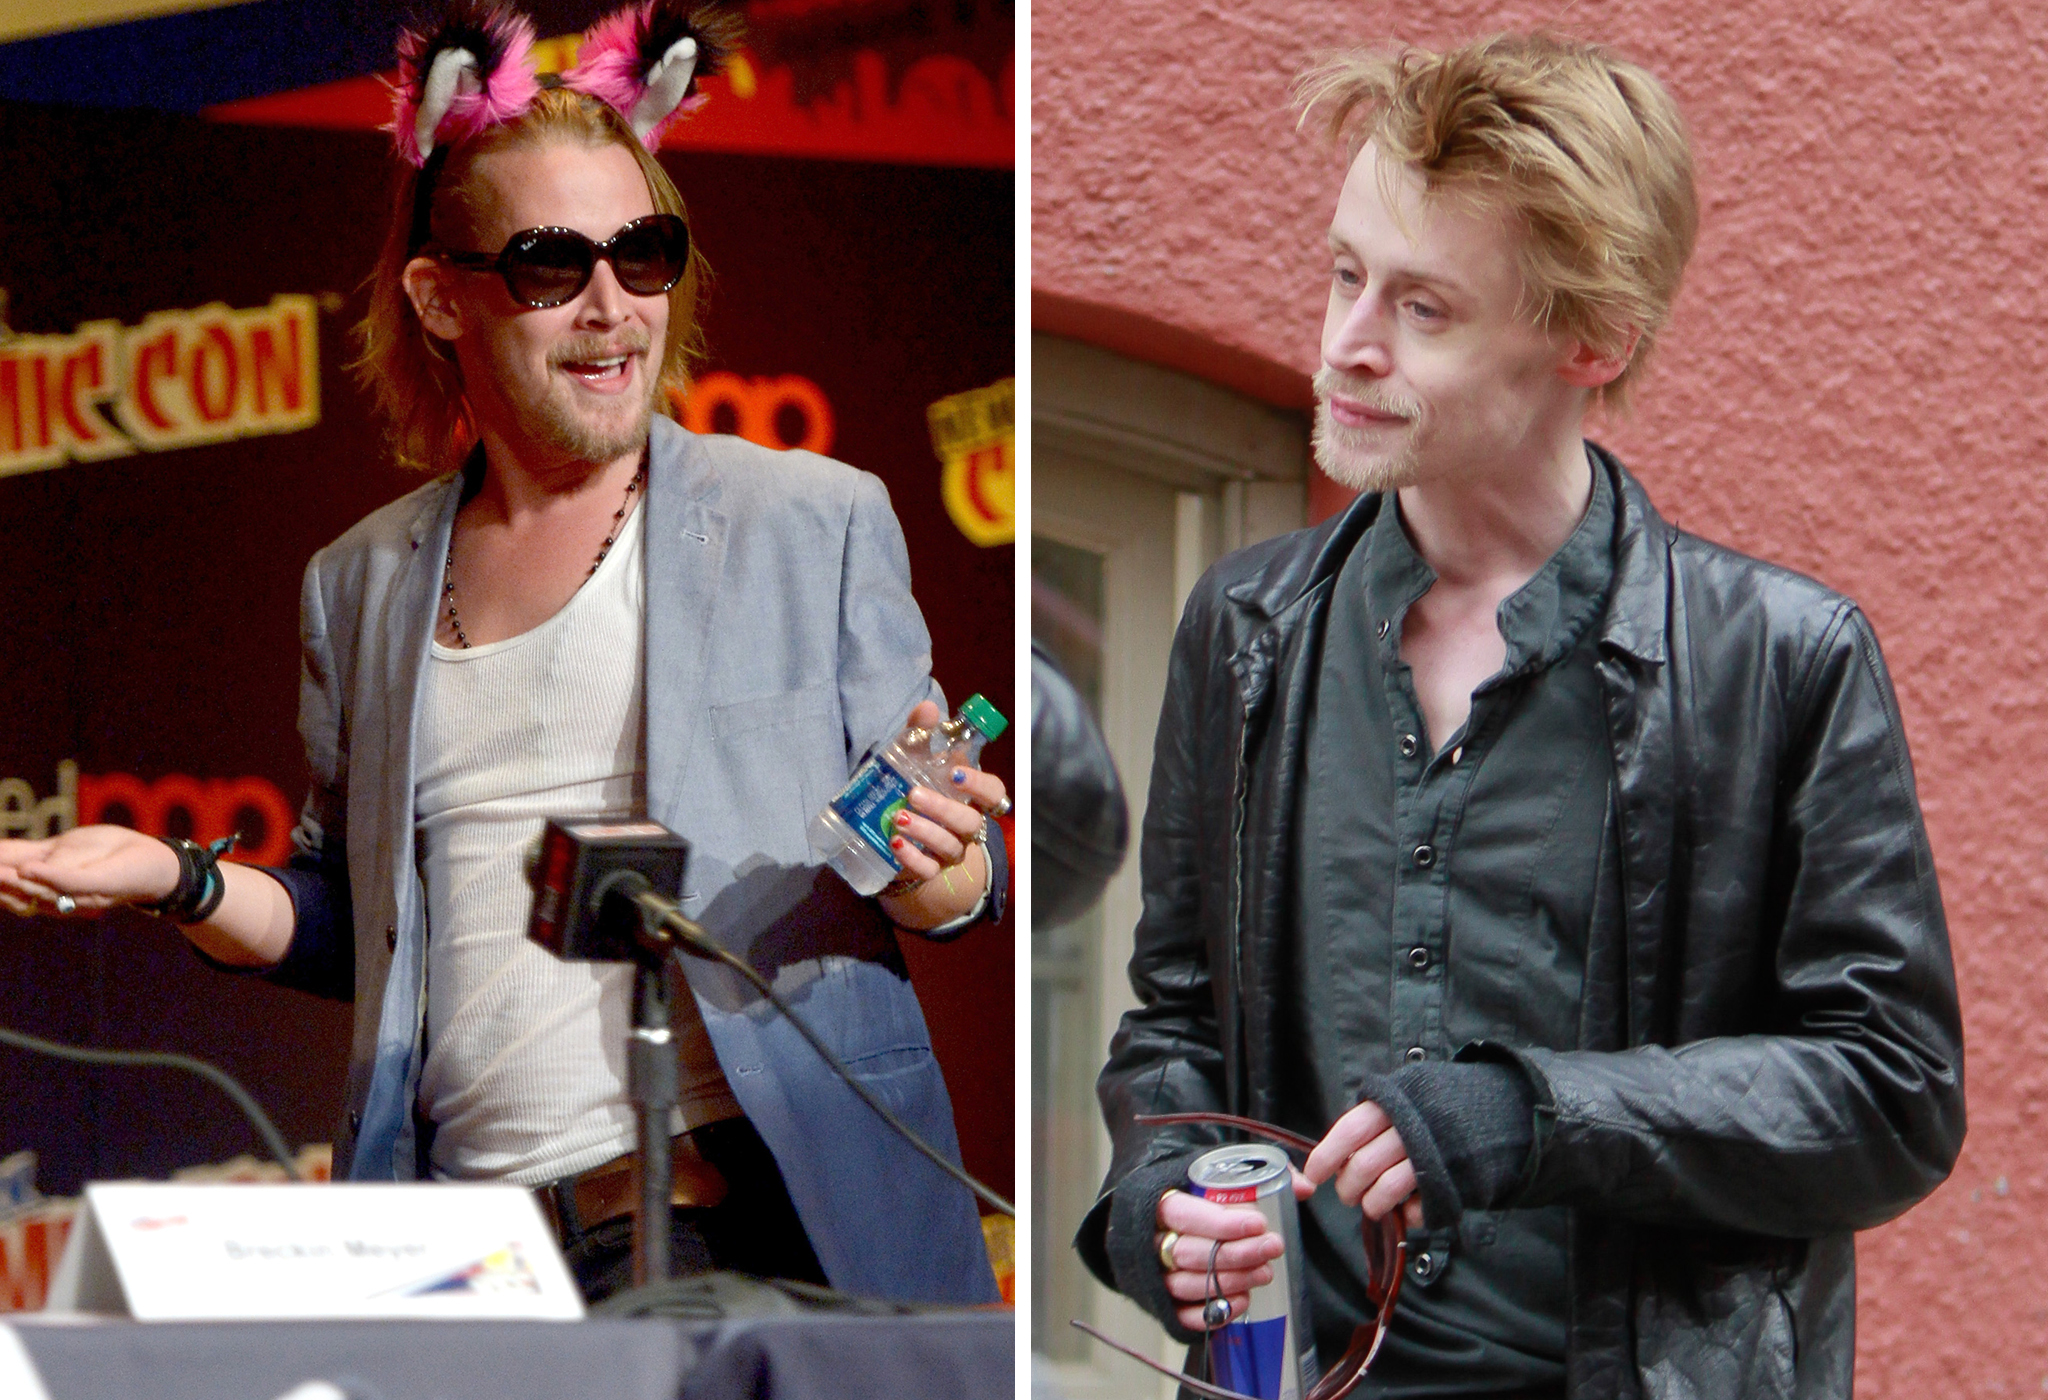 Macauly Culkin at New York Comic Con and last year looking entirely different. (L-R)